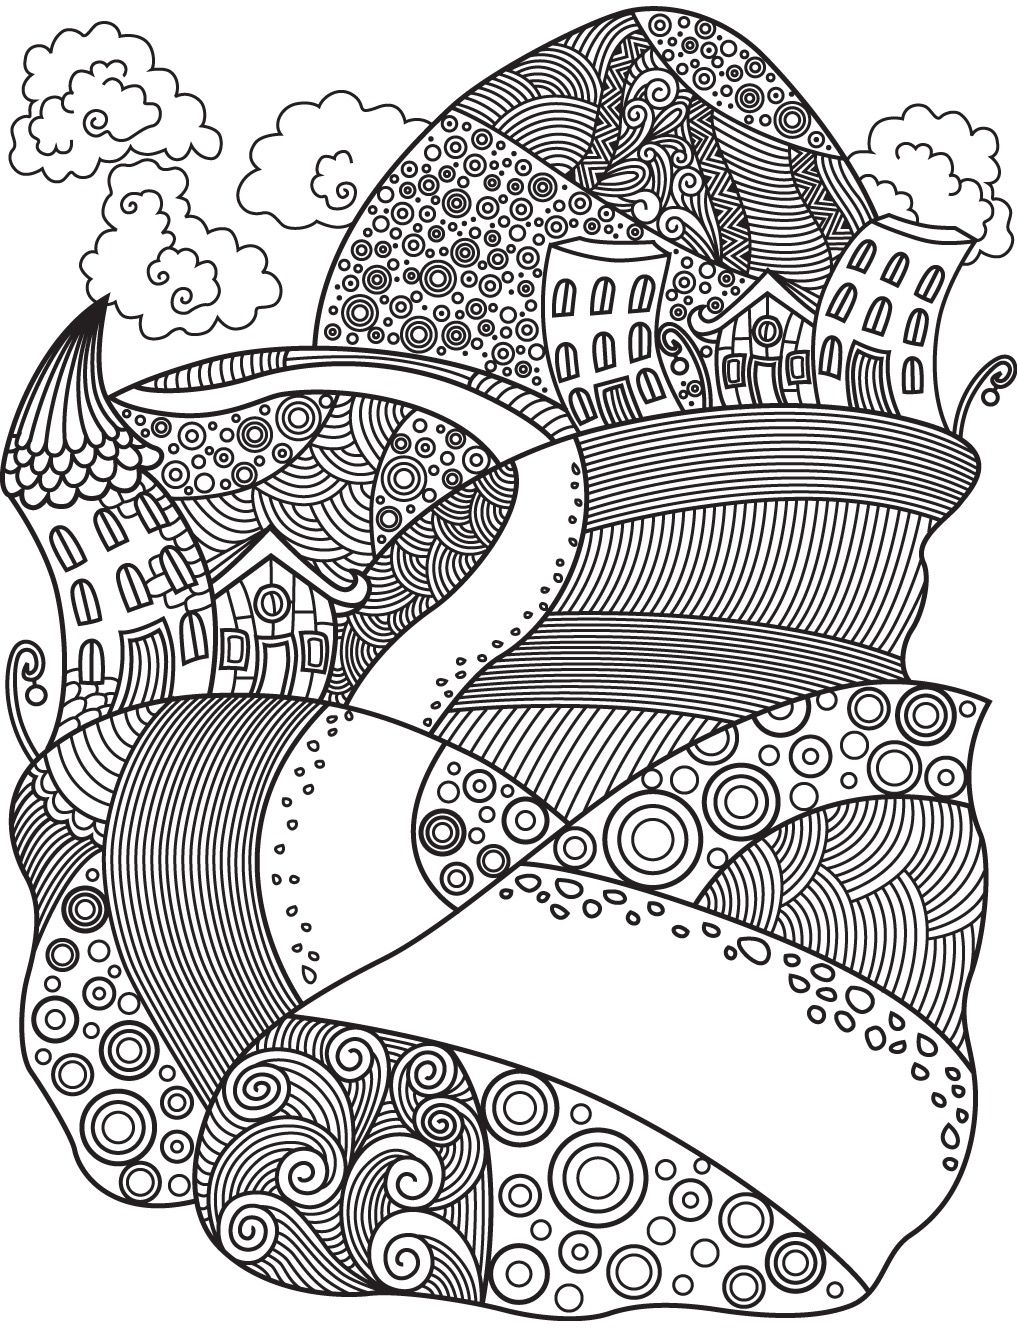 Landscapes To Color Colorish Free Coloring App For Adults By Goodsofttech Coloring Apps Coloring Pages Free Coloring